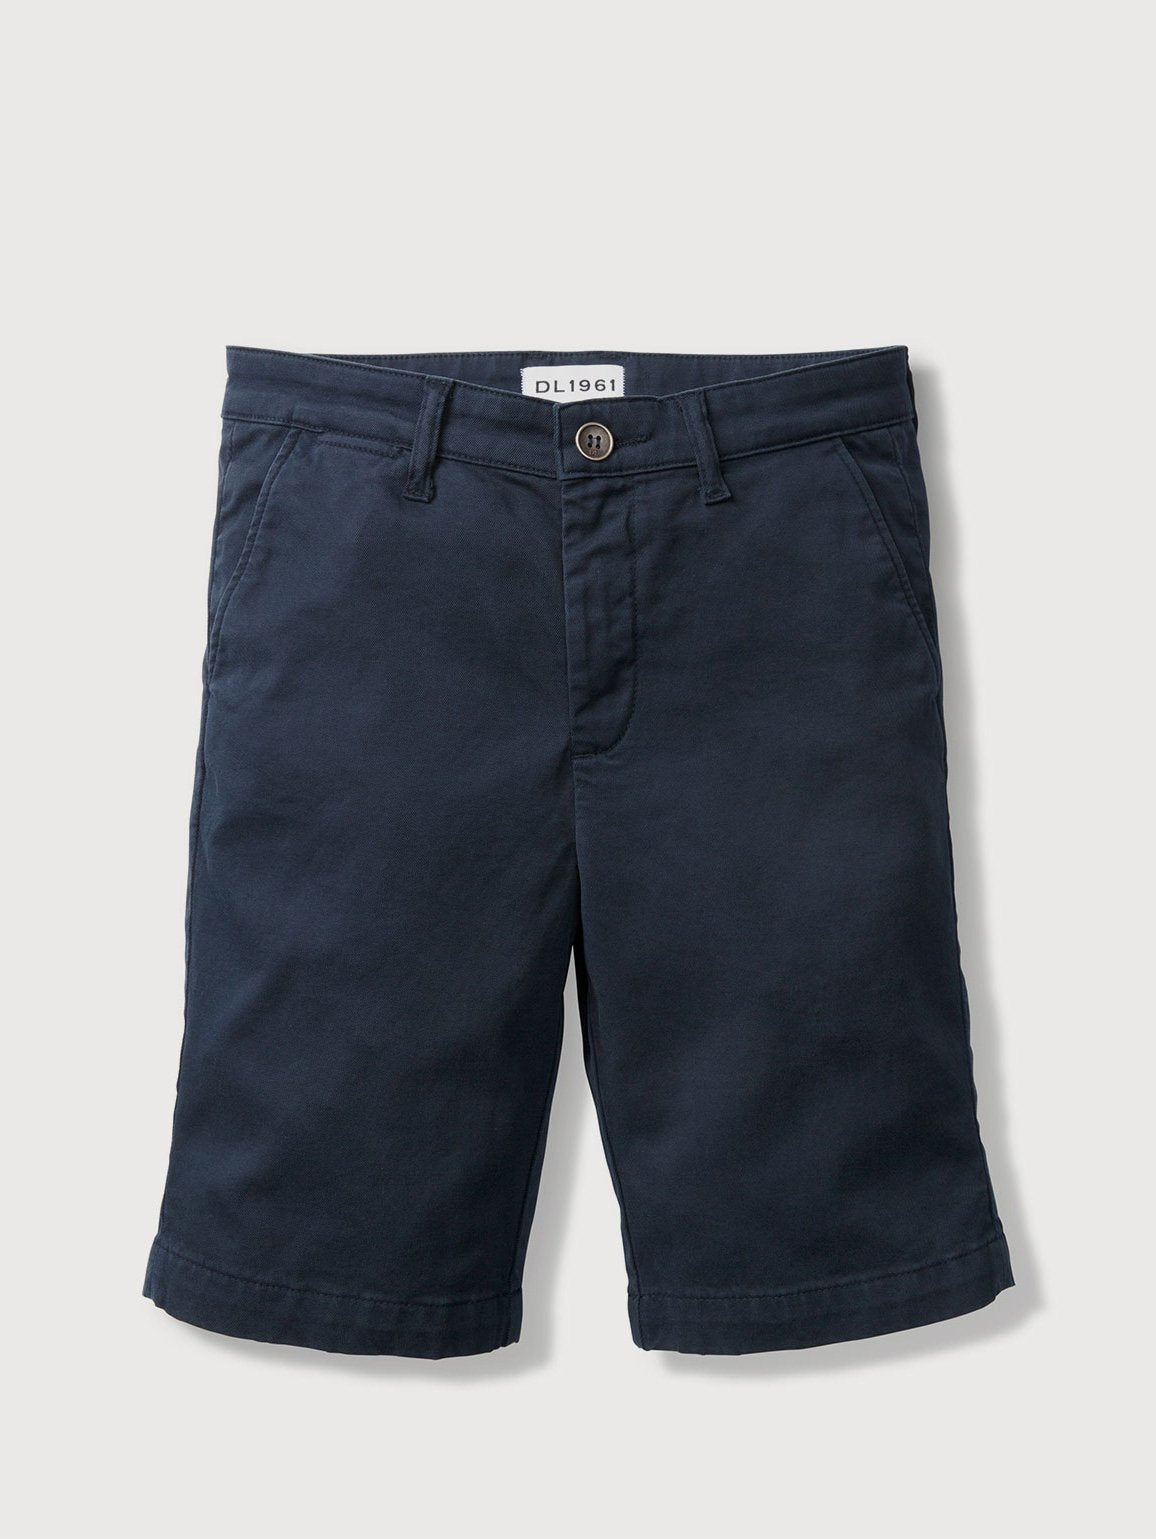 Boys - Jacob/B Chino Short Hammond - DL1961